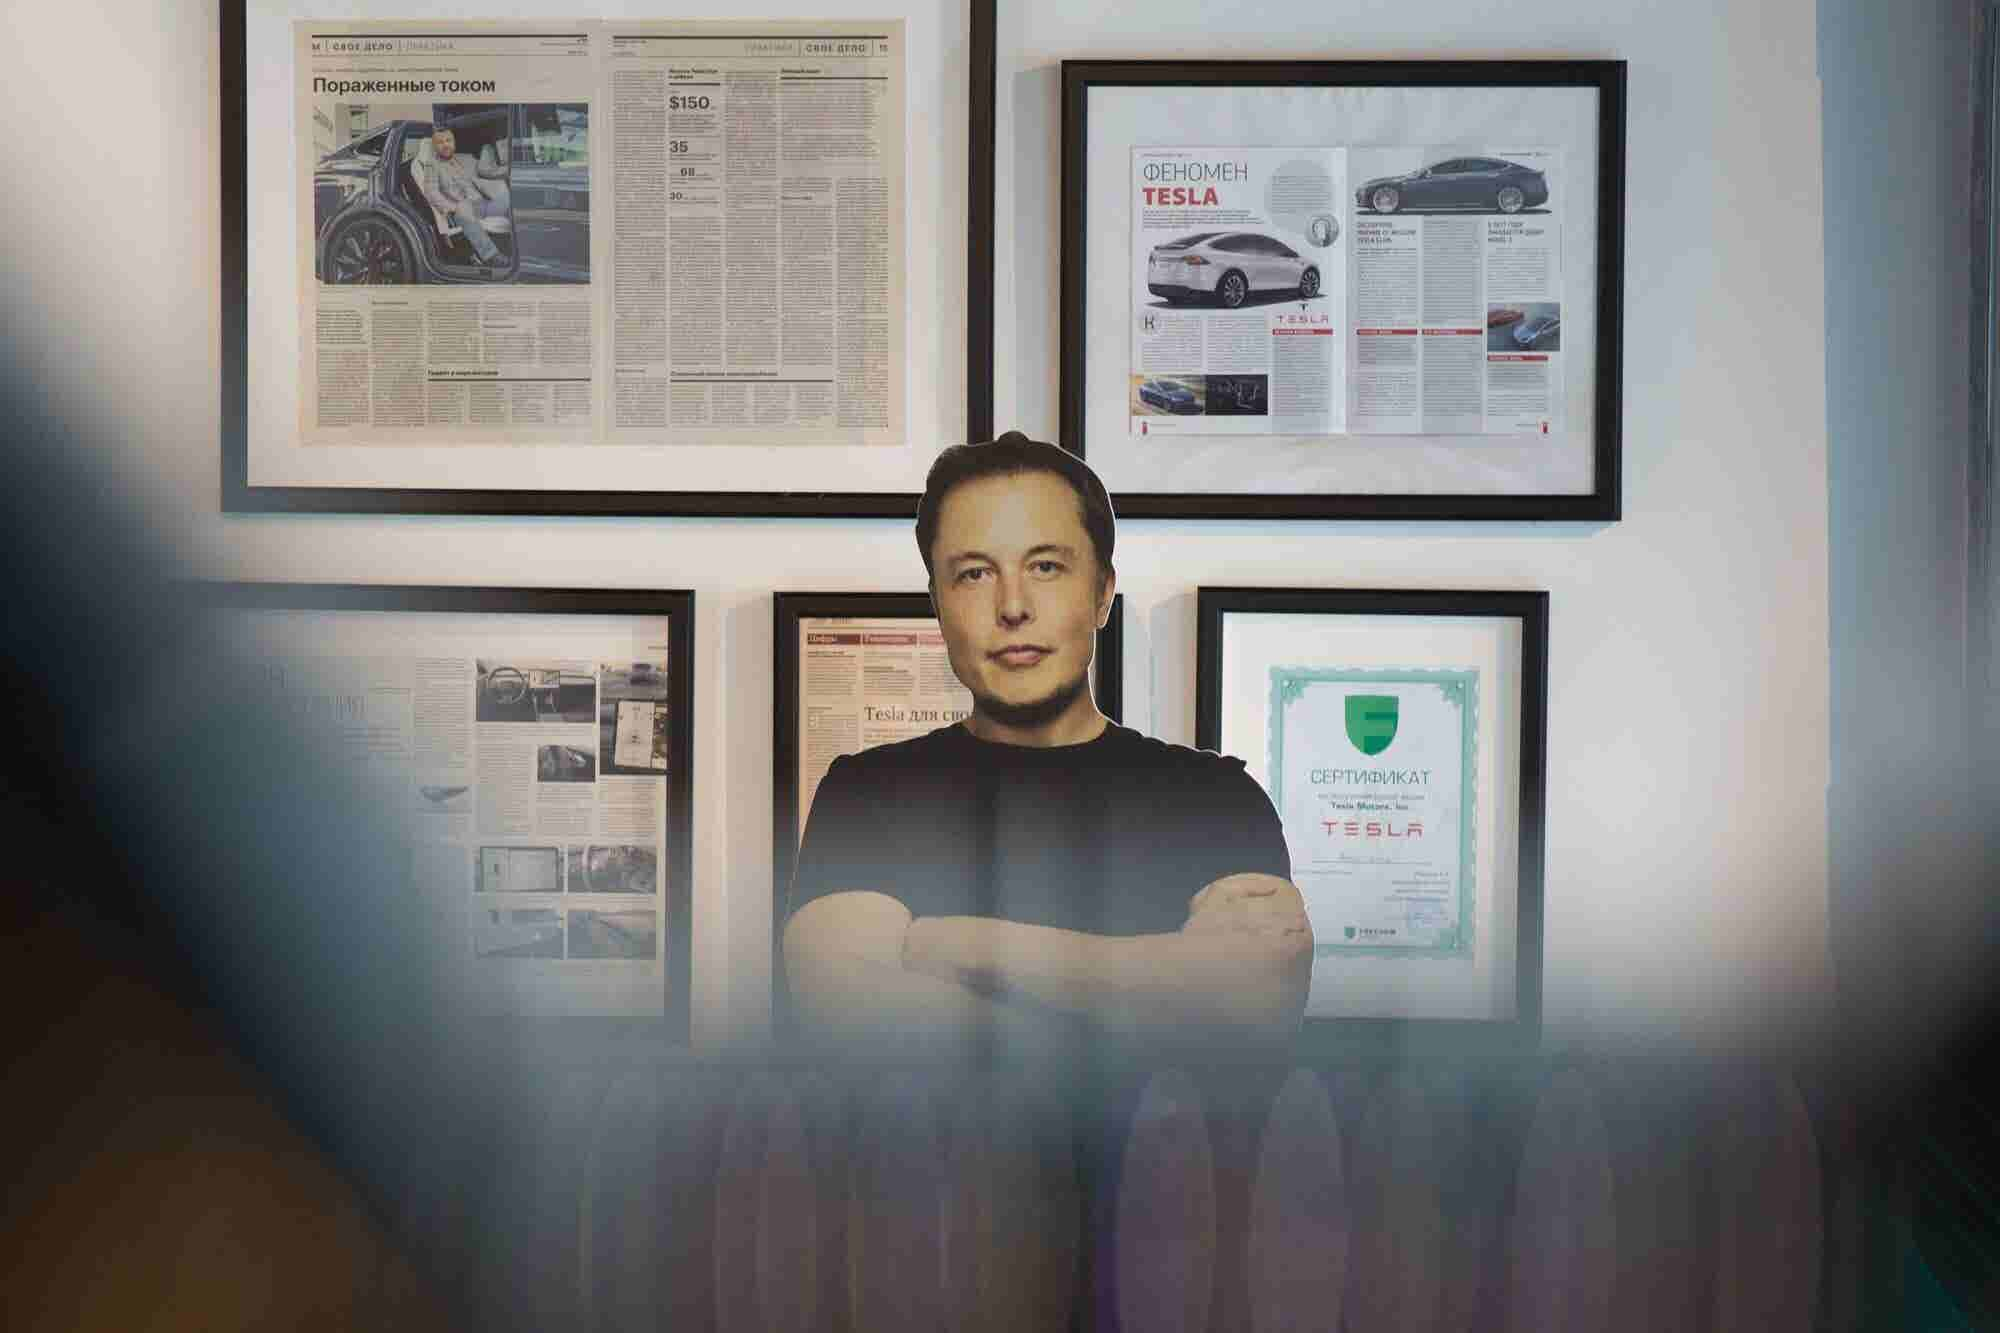 Shaming Elon Musk Is How You Kill the Next Great Inventor